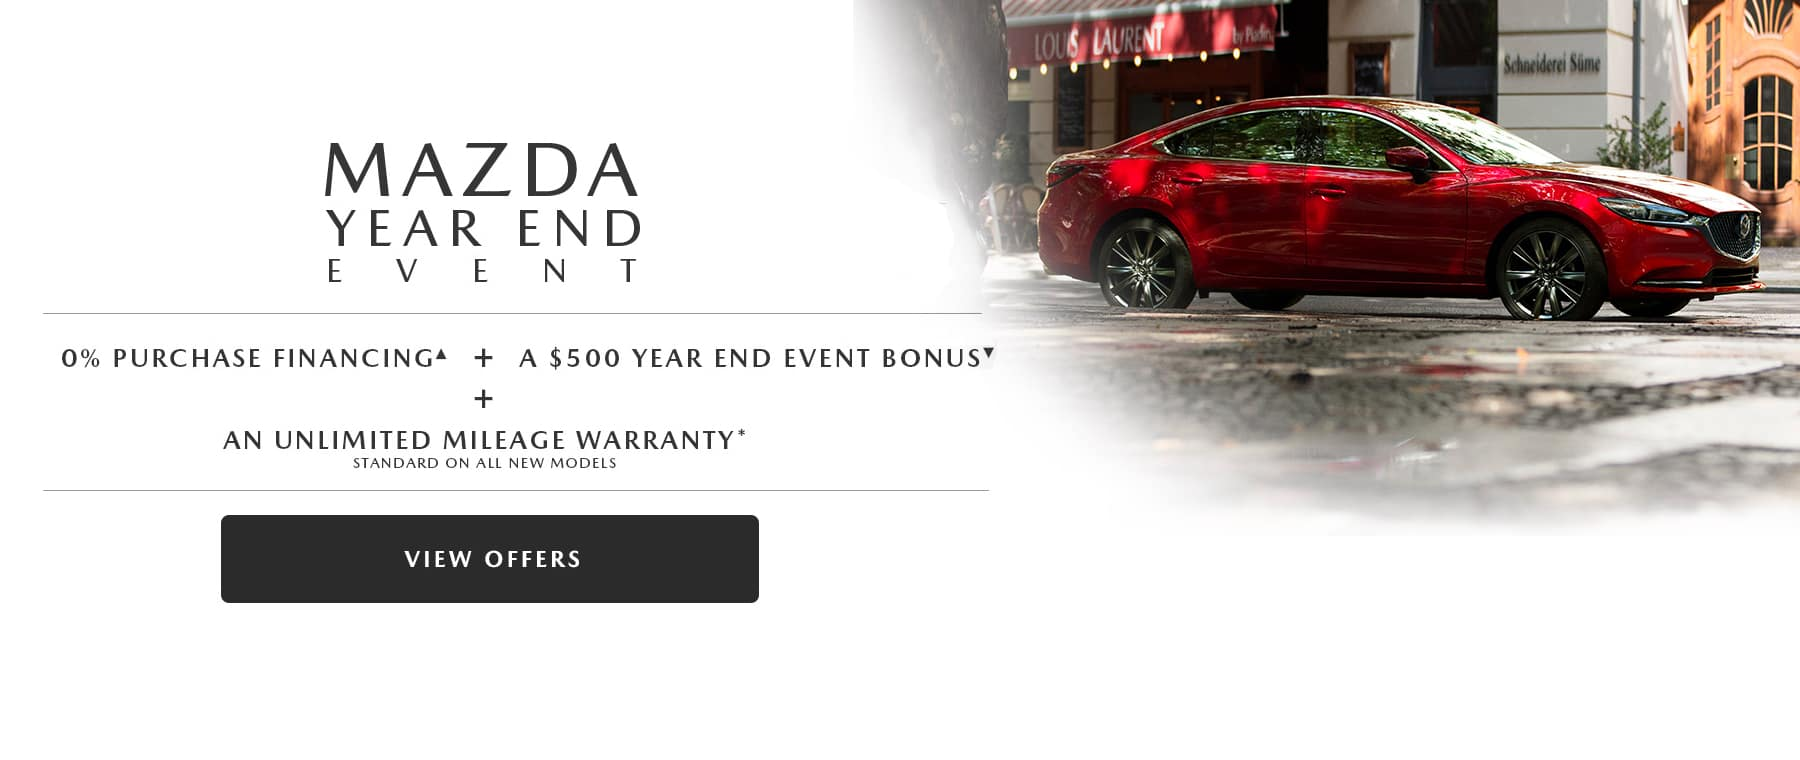 year end event banner mazda6